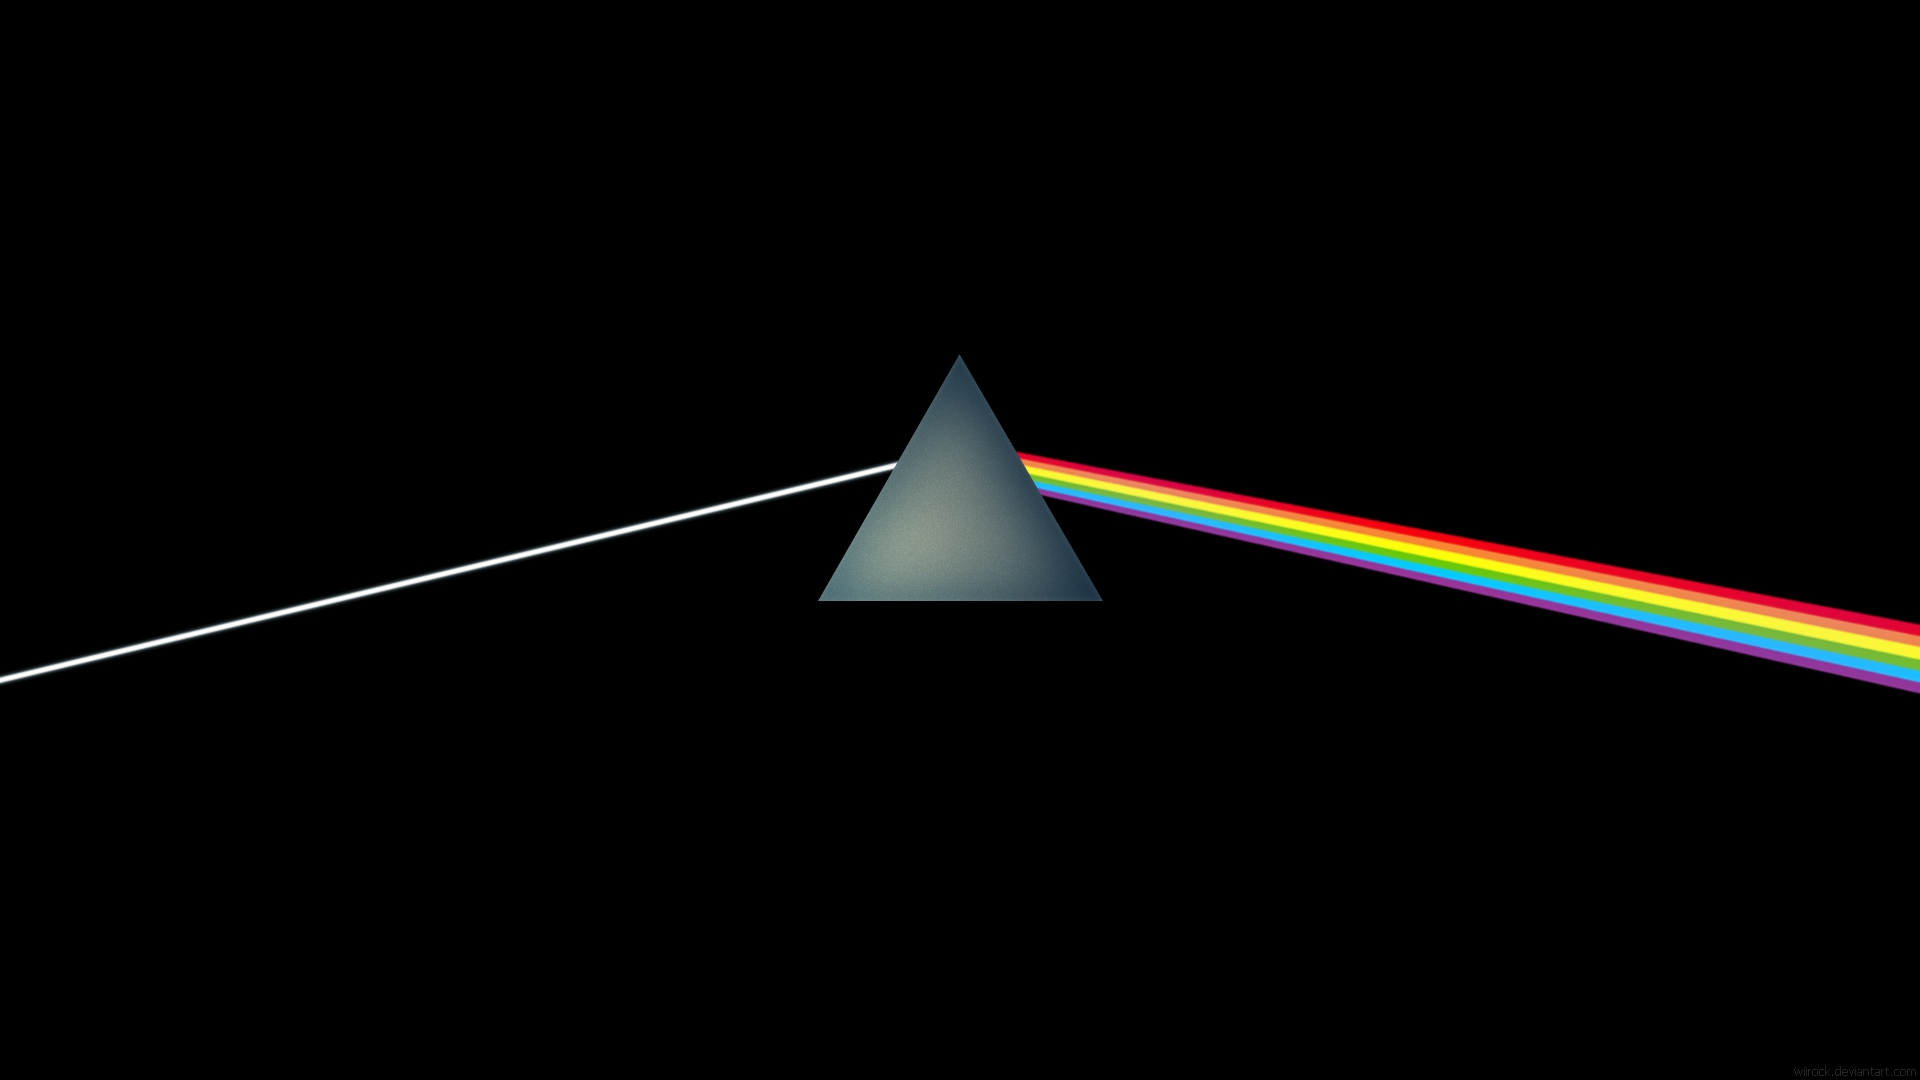 download pink floyd wallpaper 1920x1080 | wallpoper #393054